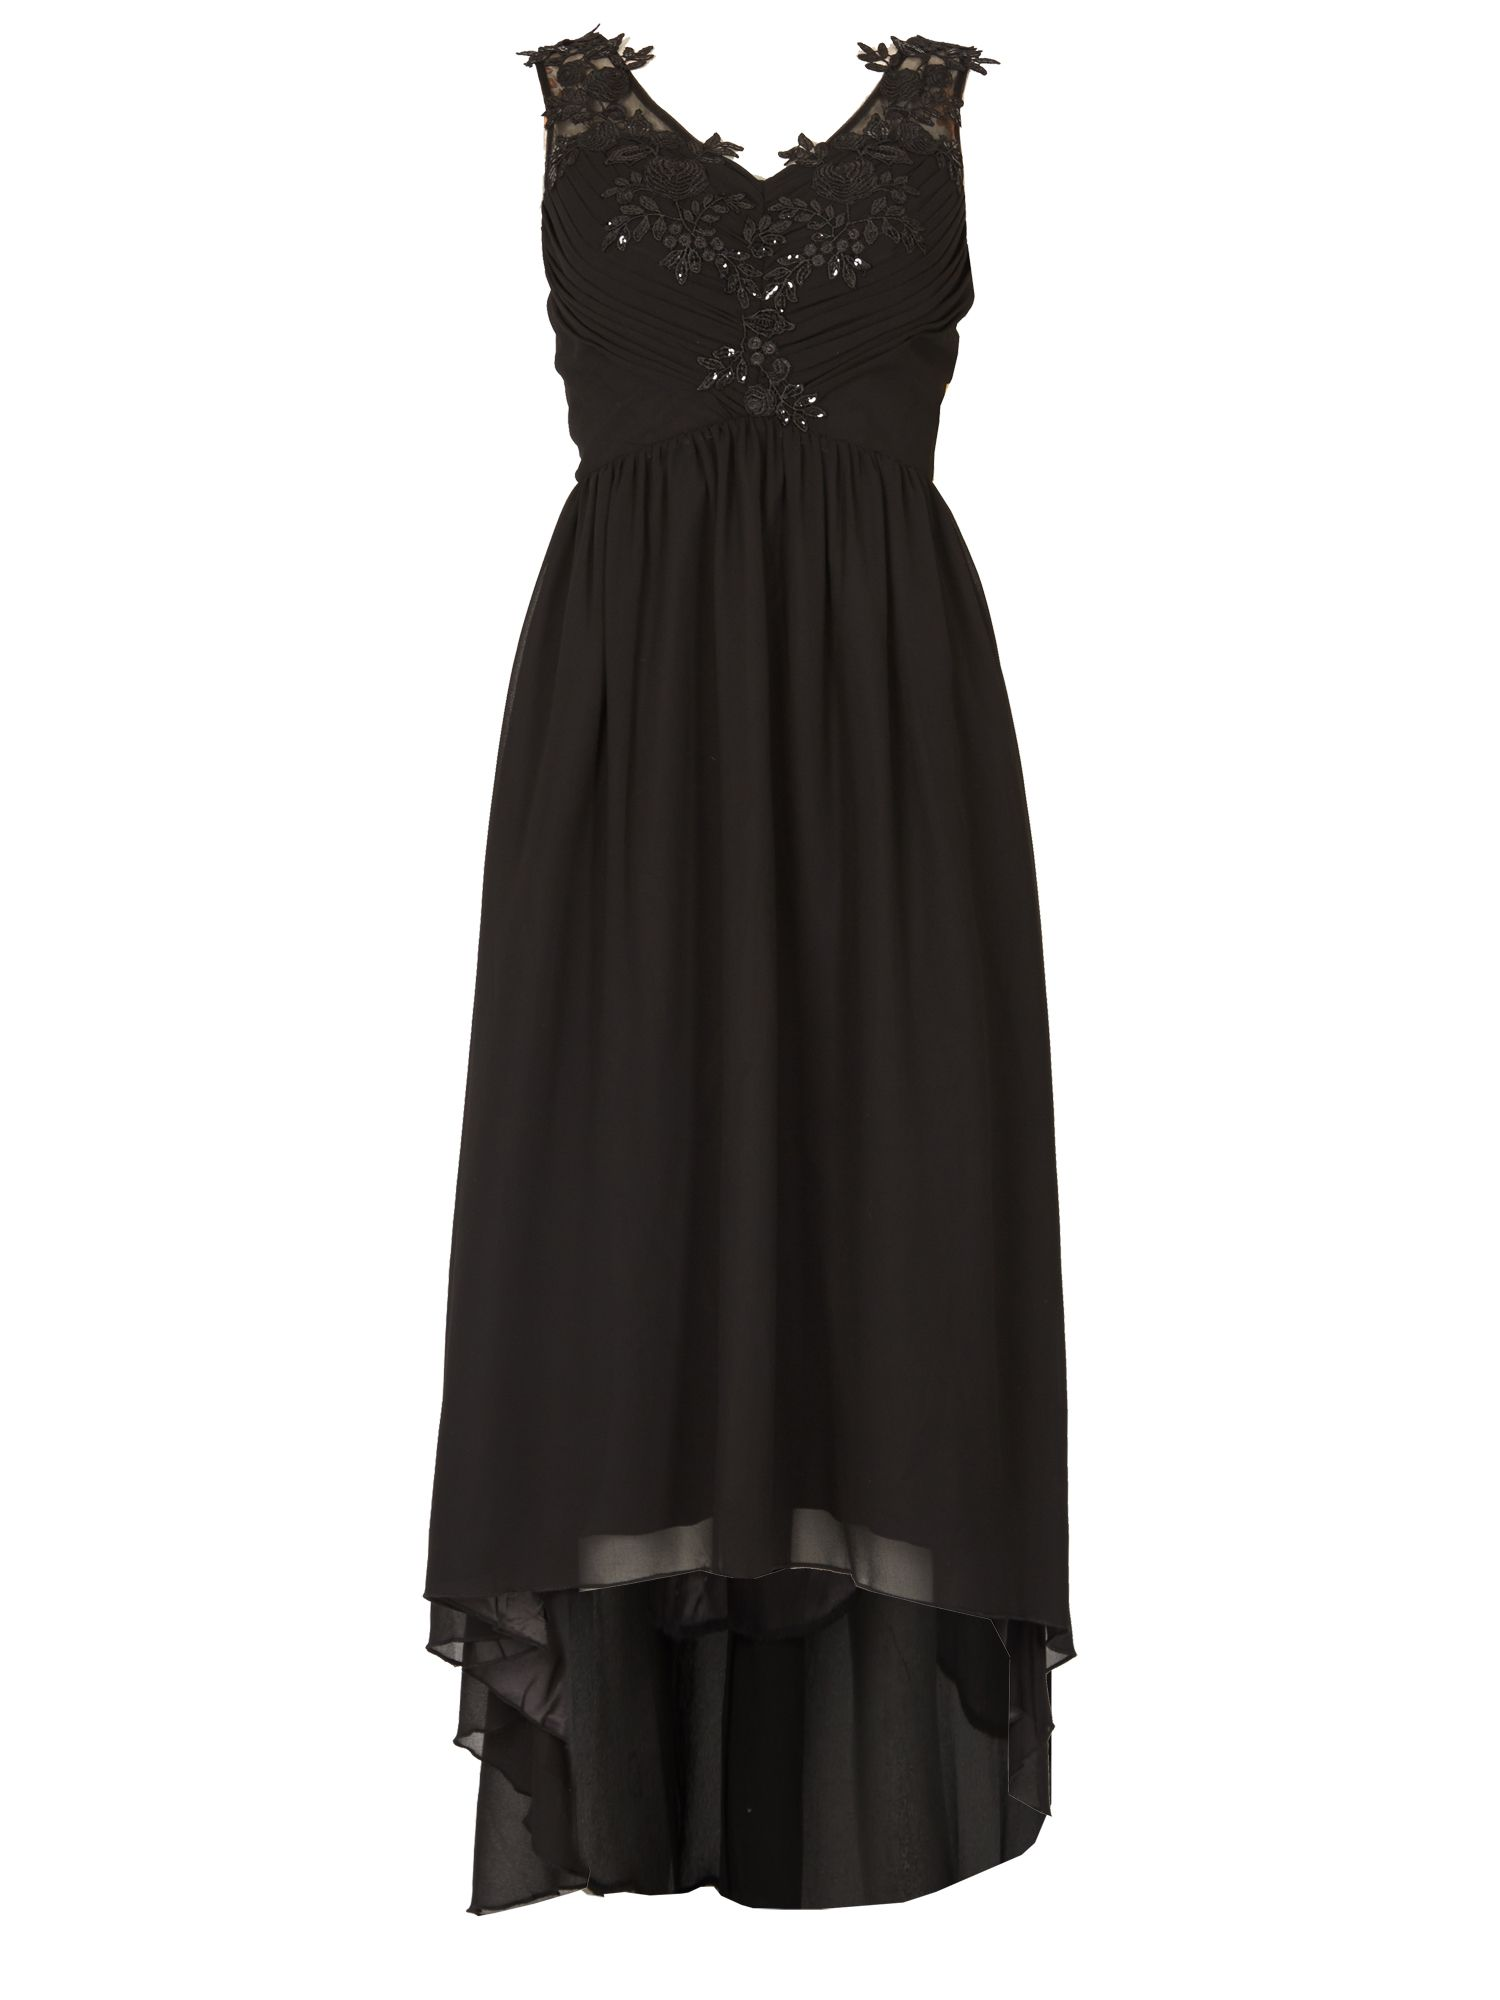 Izabel London Embellished Assymetric Dress, Black